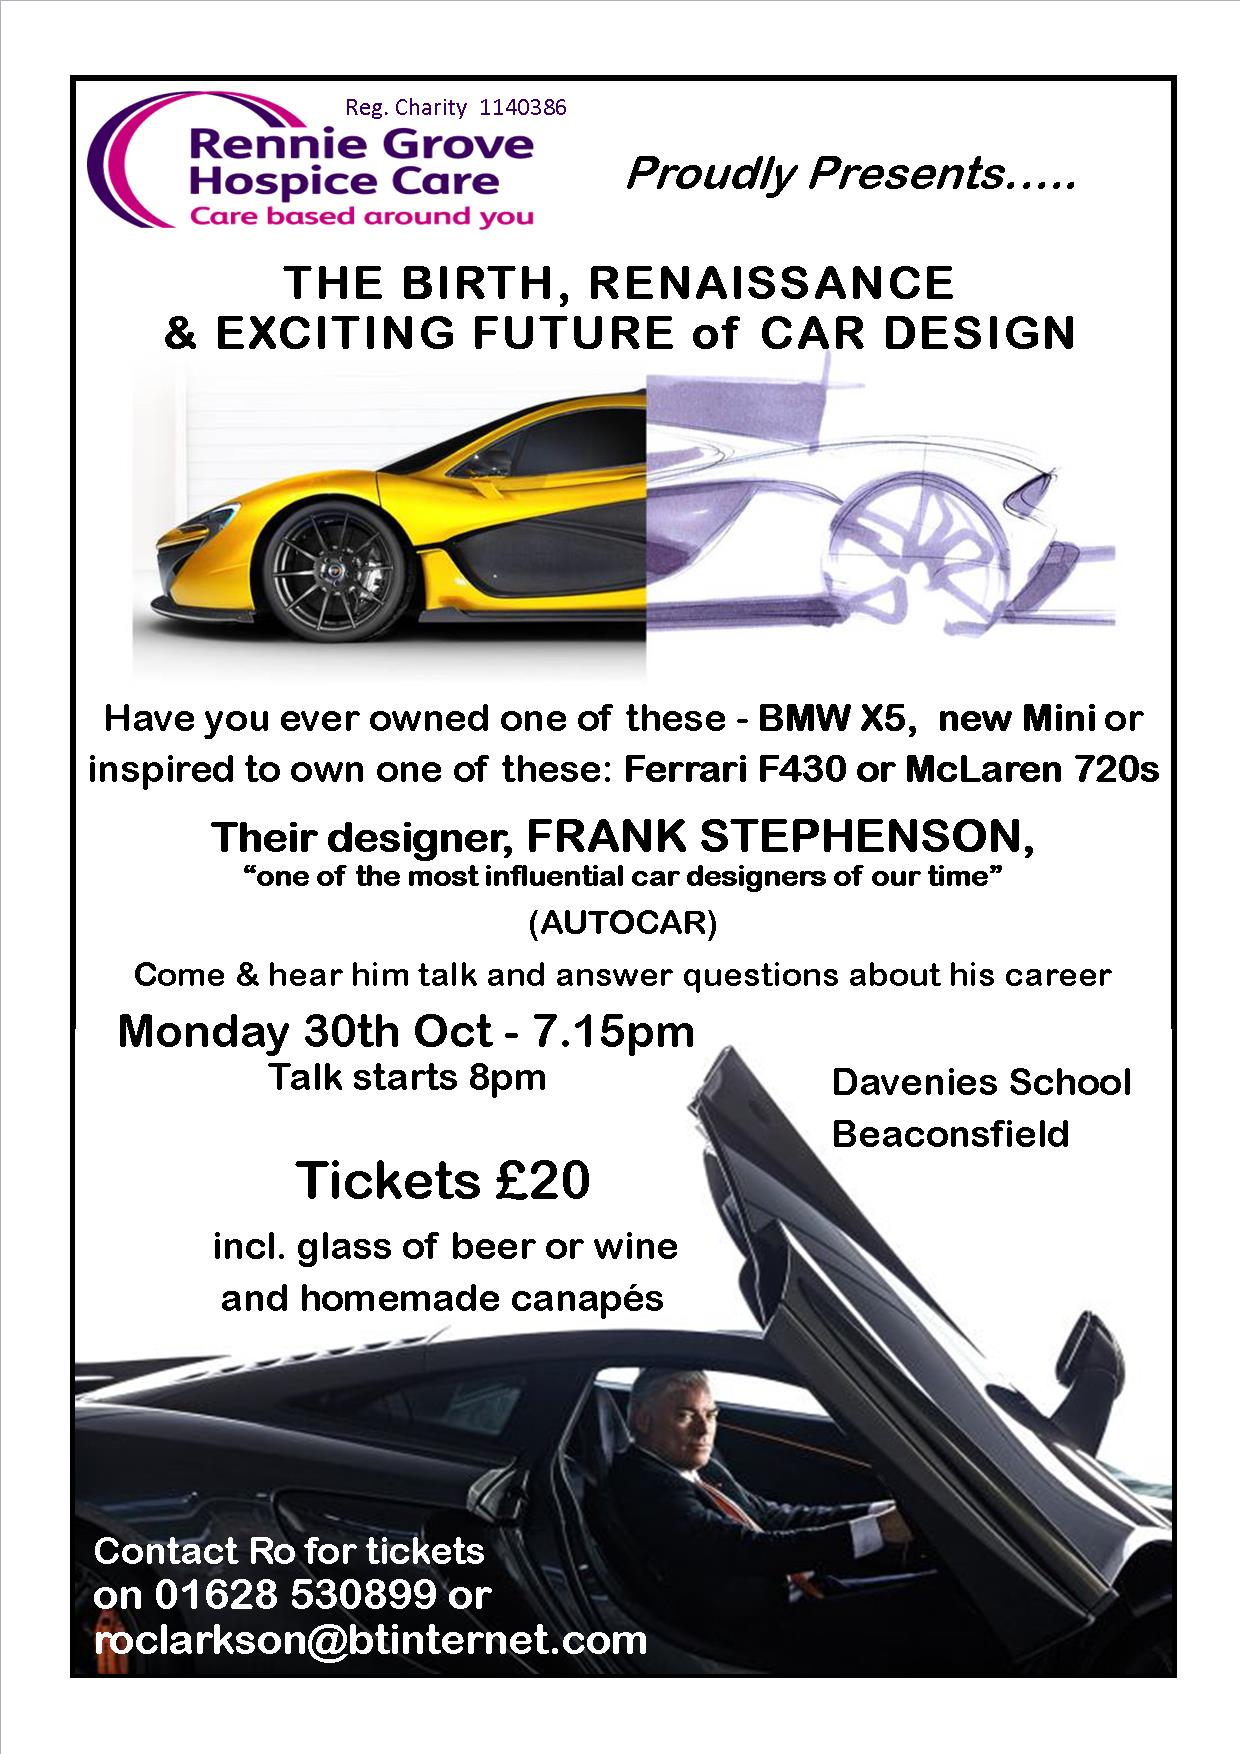 Rennie Grove Hospice Care - The Birth, Renaissance & Exciting Future of Car Design